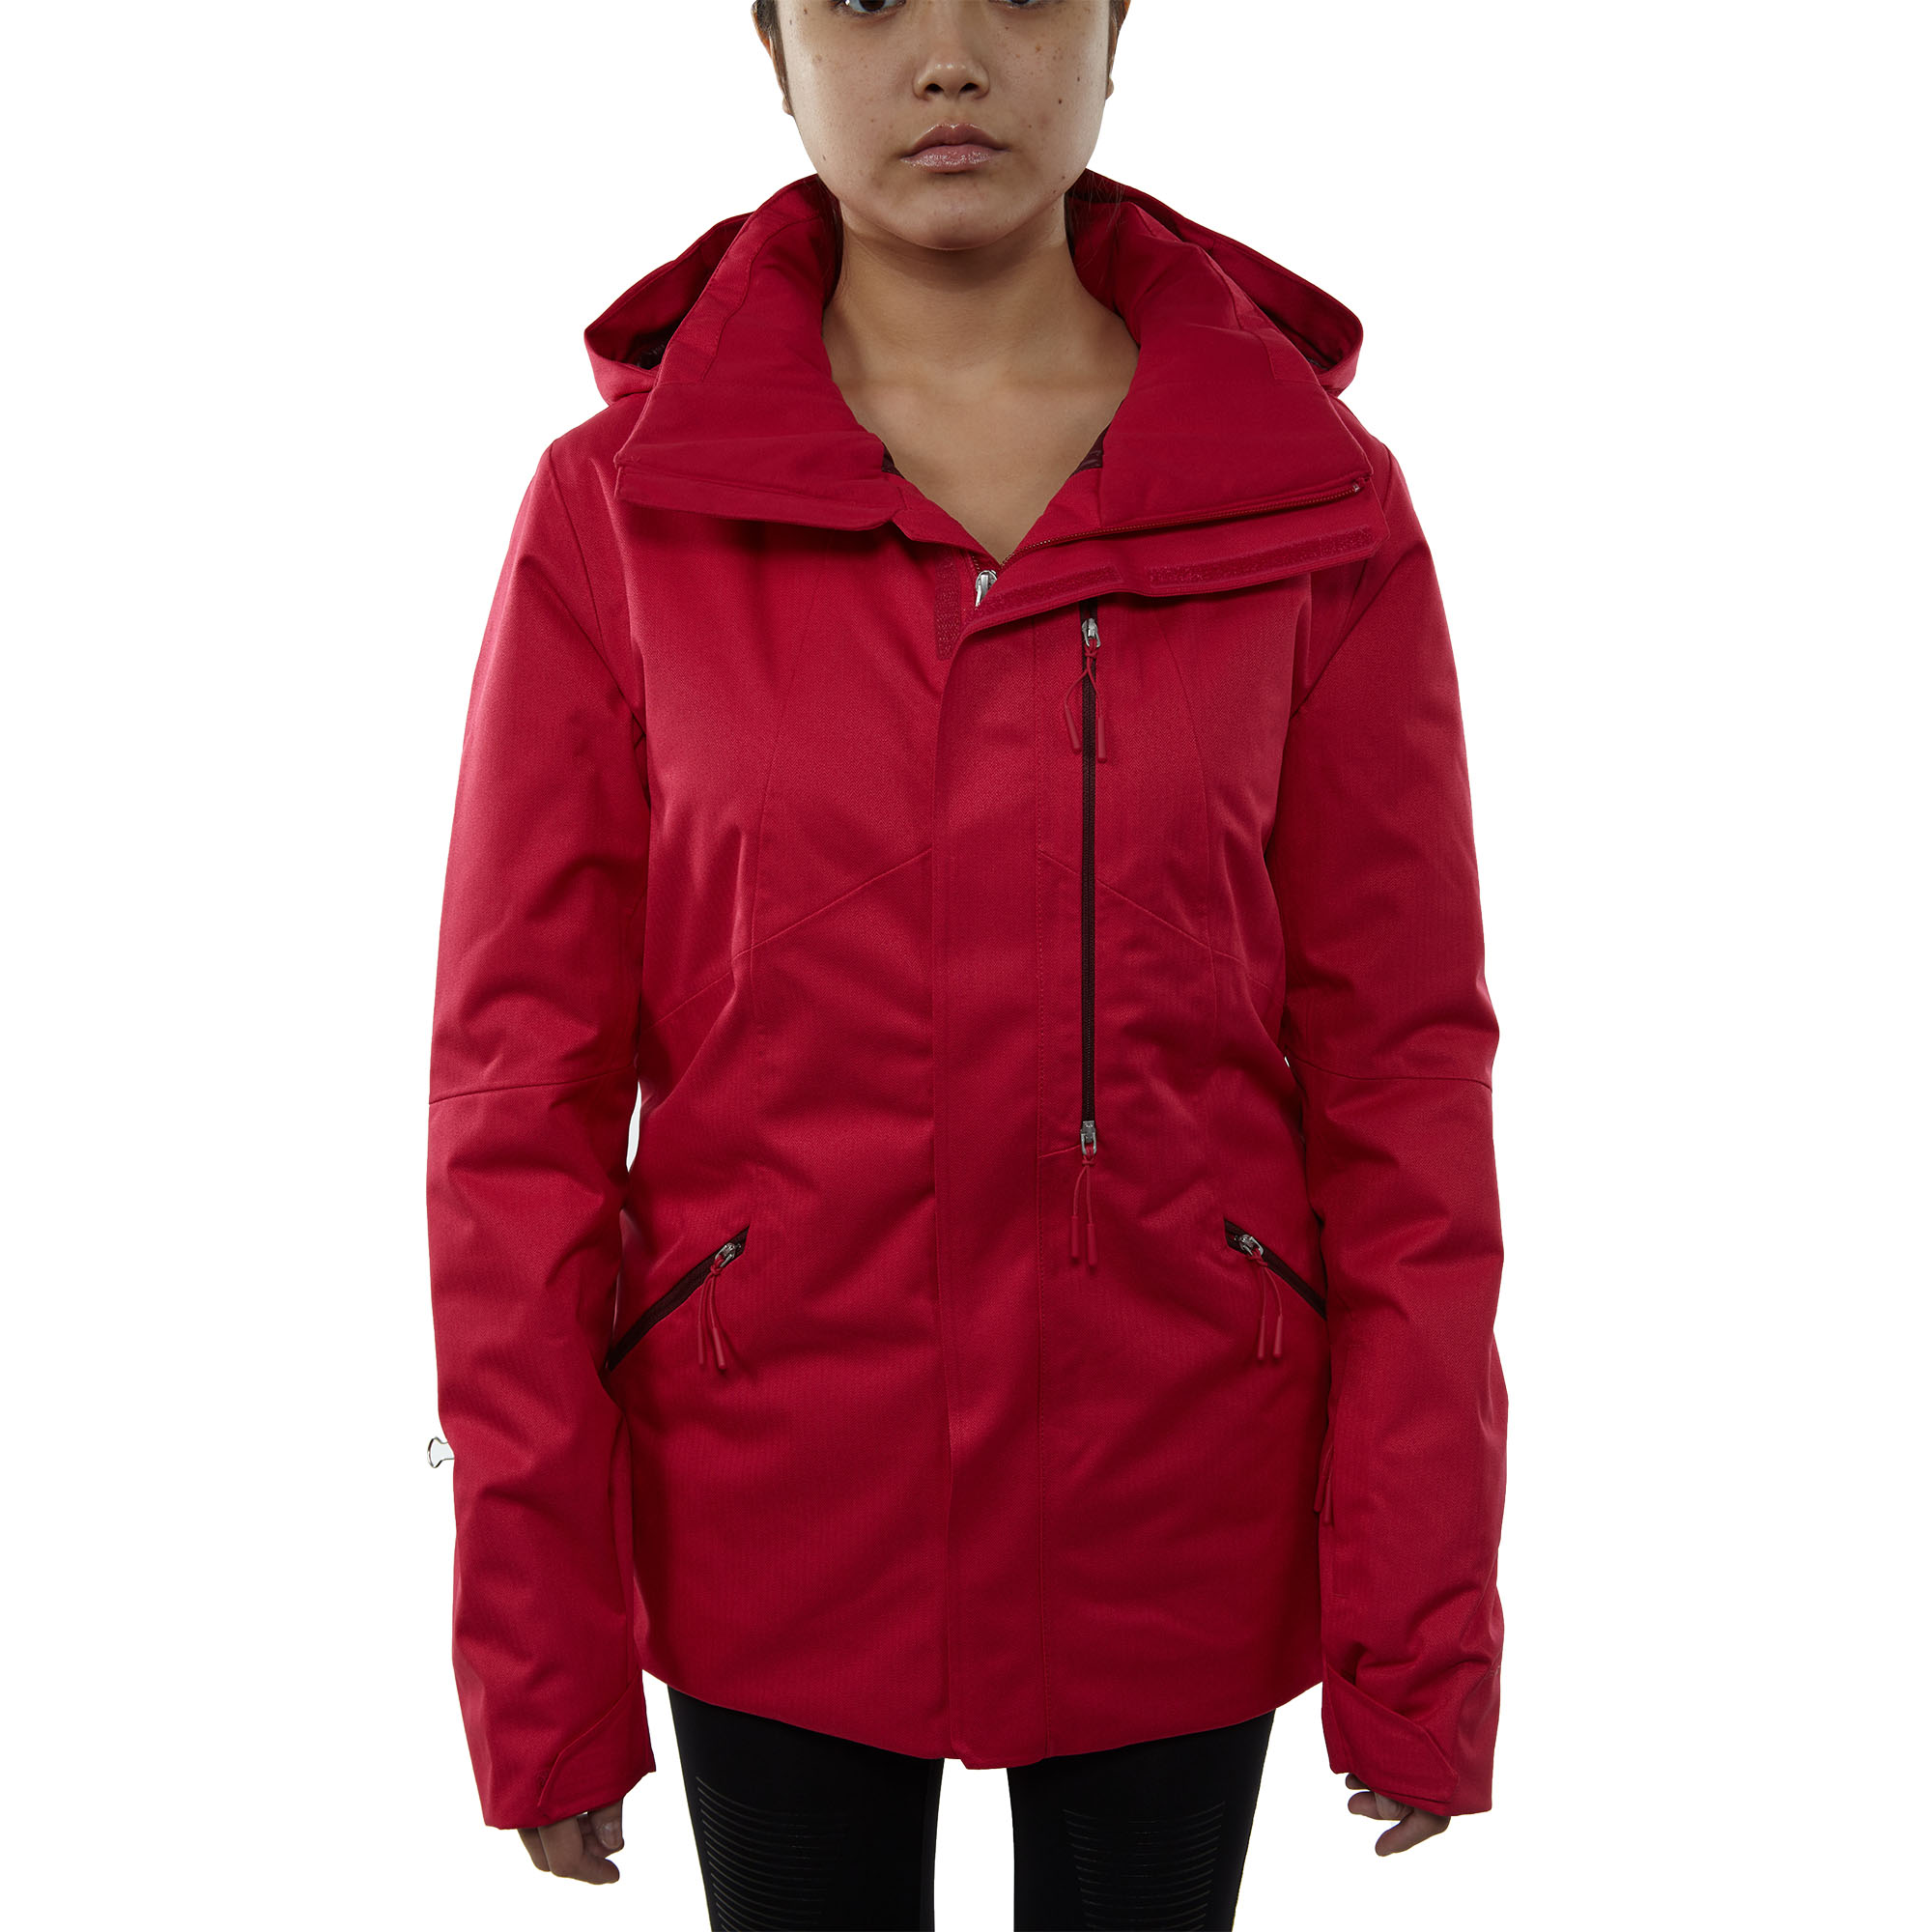 3d6caff98a Details about The North Face Womens Gatekeeper Jacket A3KQU-657